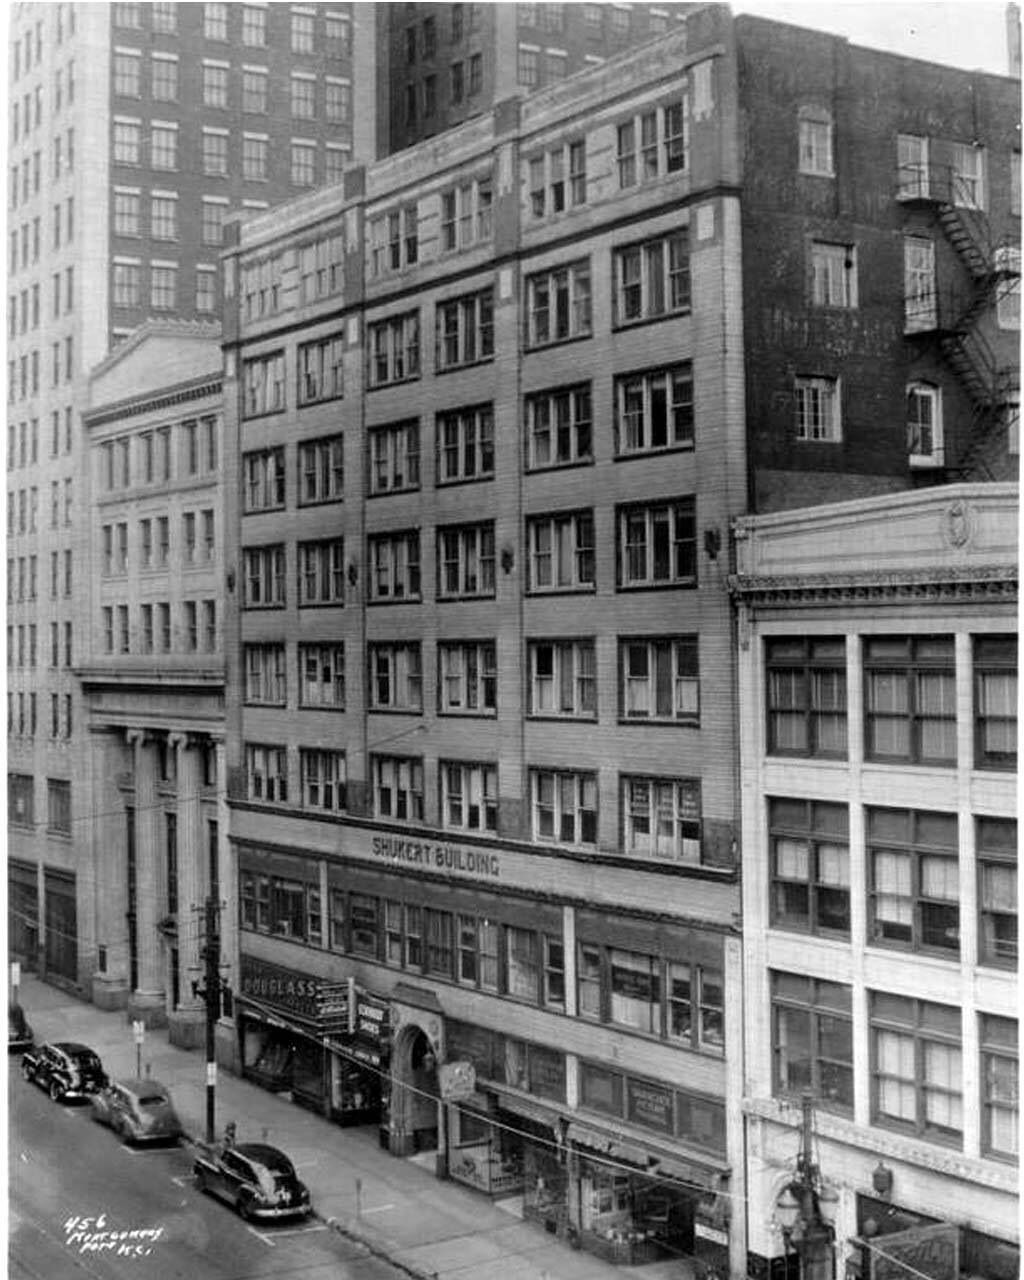 Shukert Building 1115 Grand 1950 S Kansas City Downtown Kansas City Missouri Kansas City